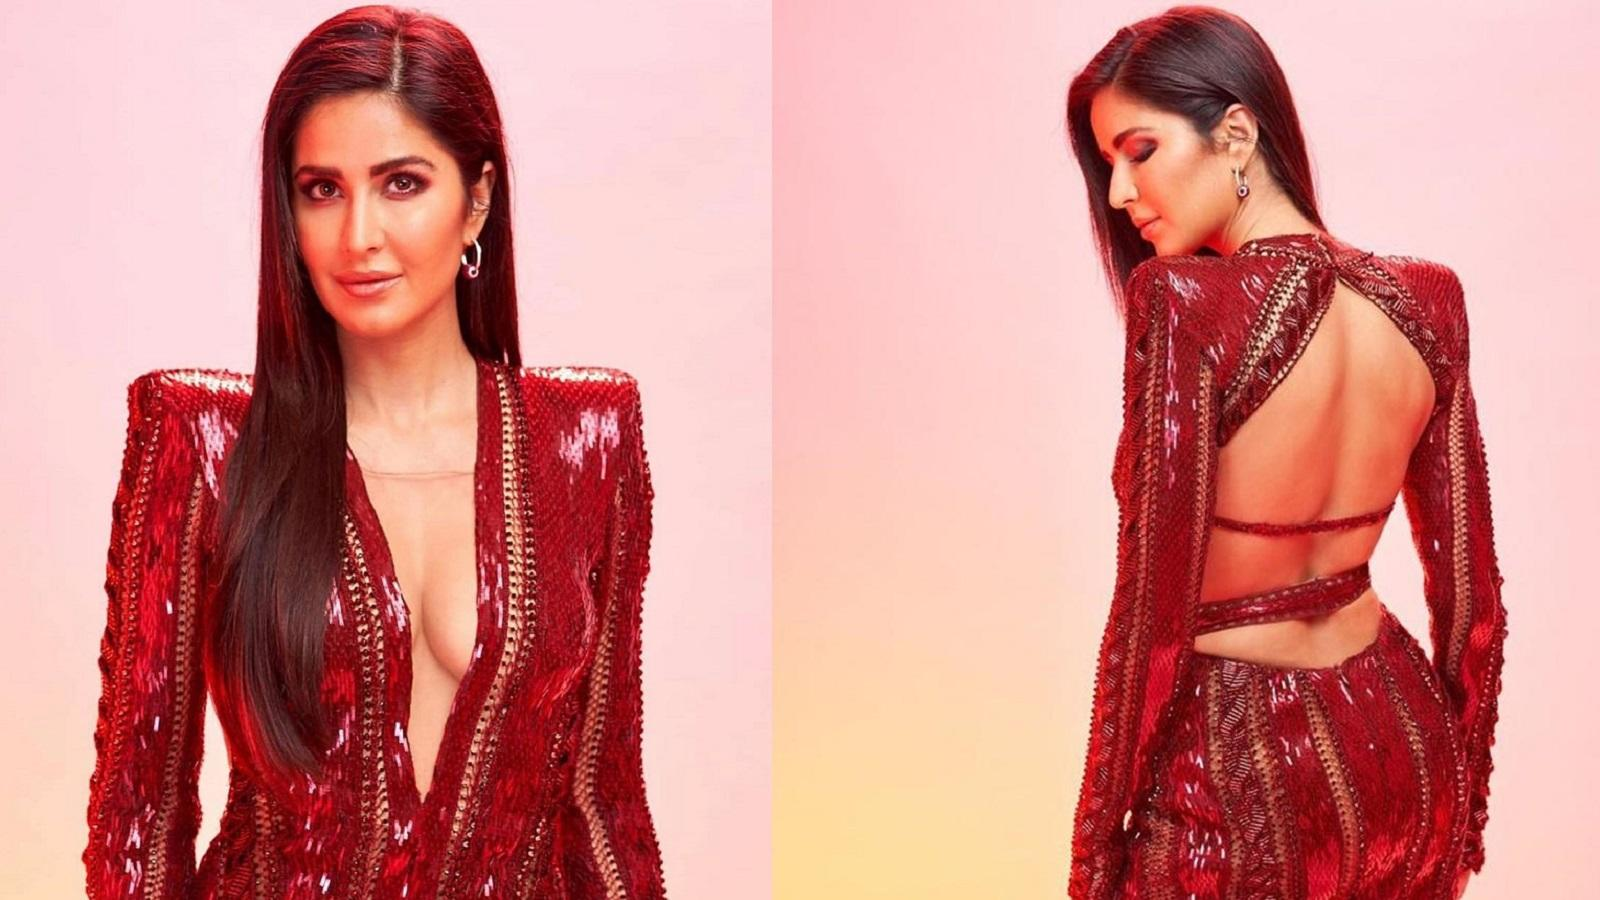 katrina-kaif-is-a-sight-to-behold-in-this-thigh-high-slit-gown